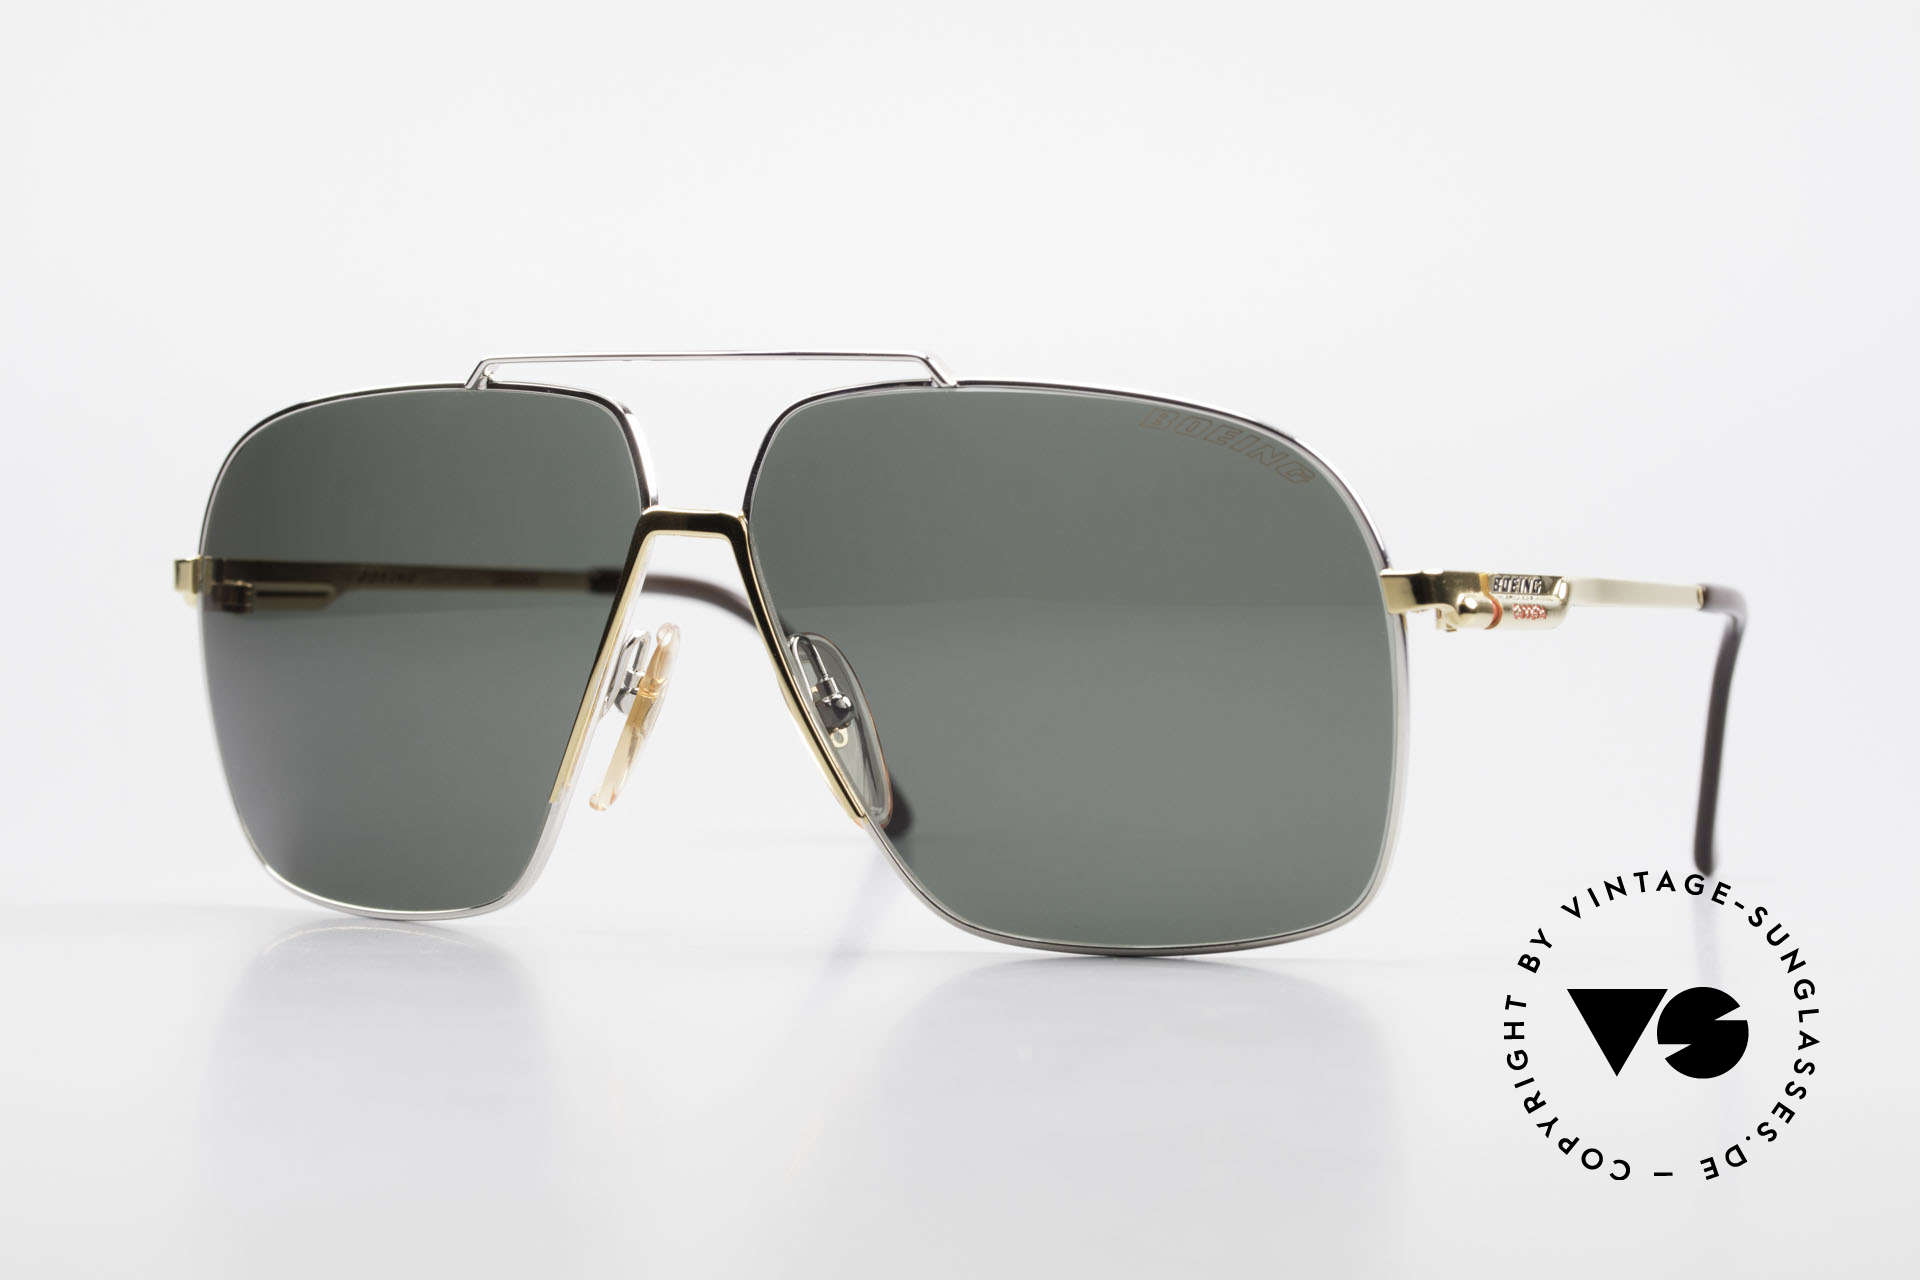 Boeing 5704 Original Old 80's Pilots Shades, The BOEING Collection by Carrera from 1988/1989, Made for Men